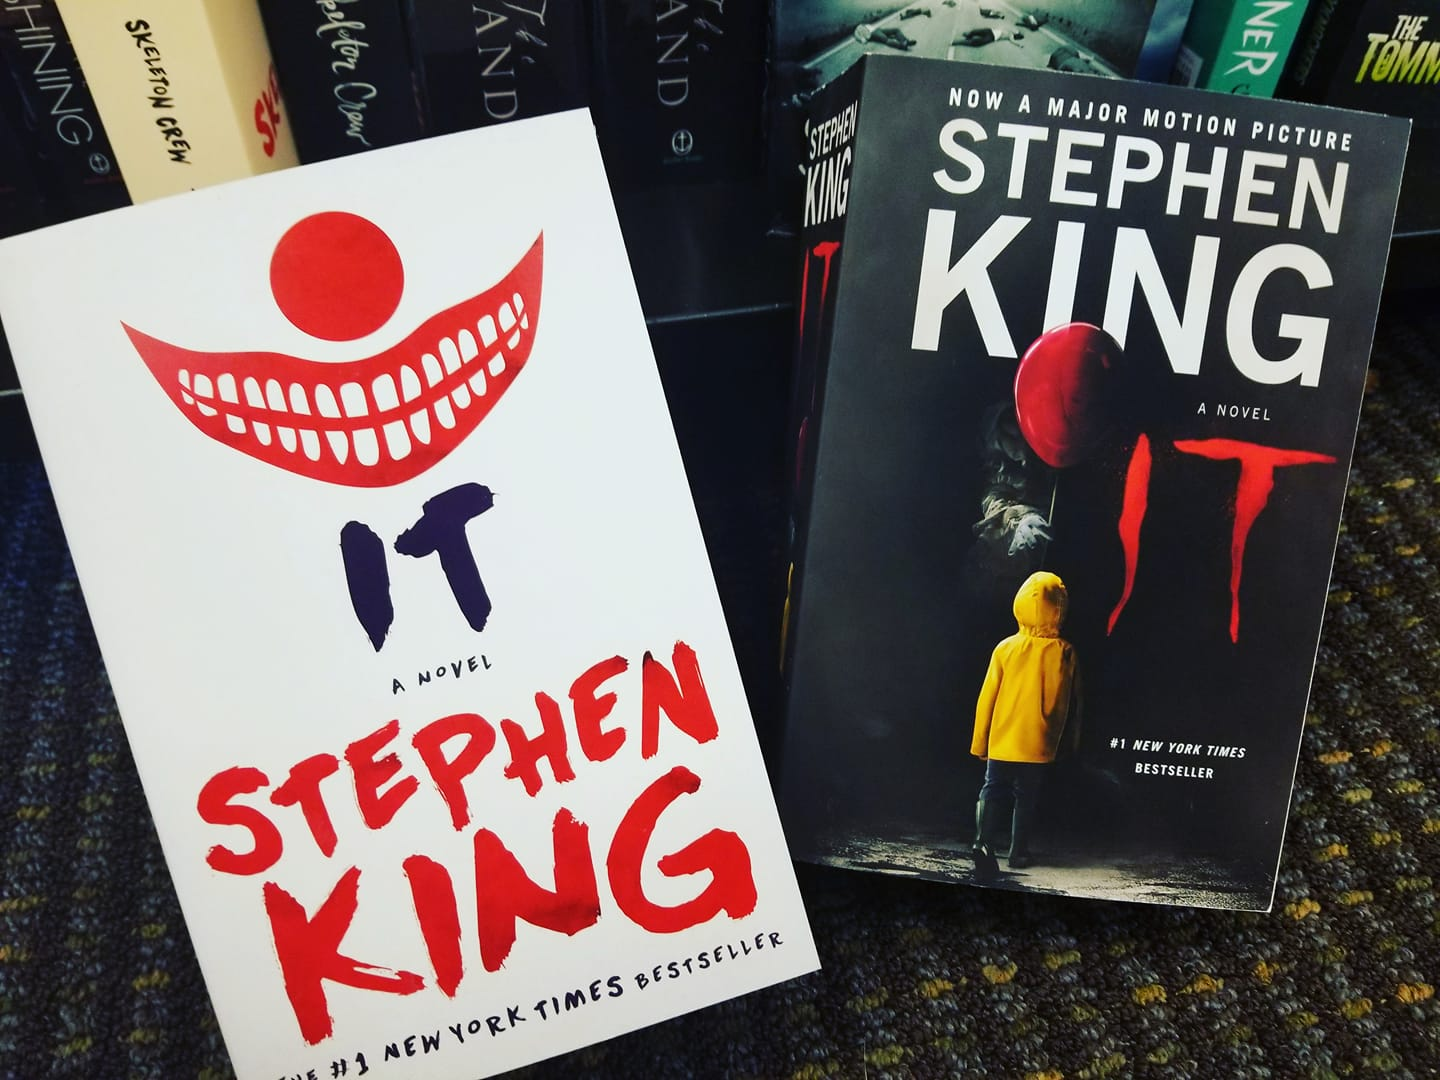 'It' by Stephen King